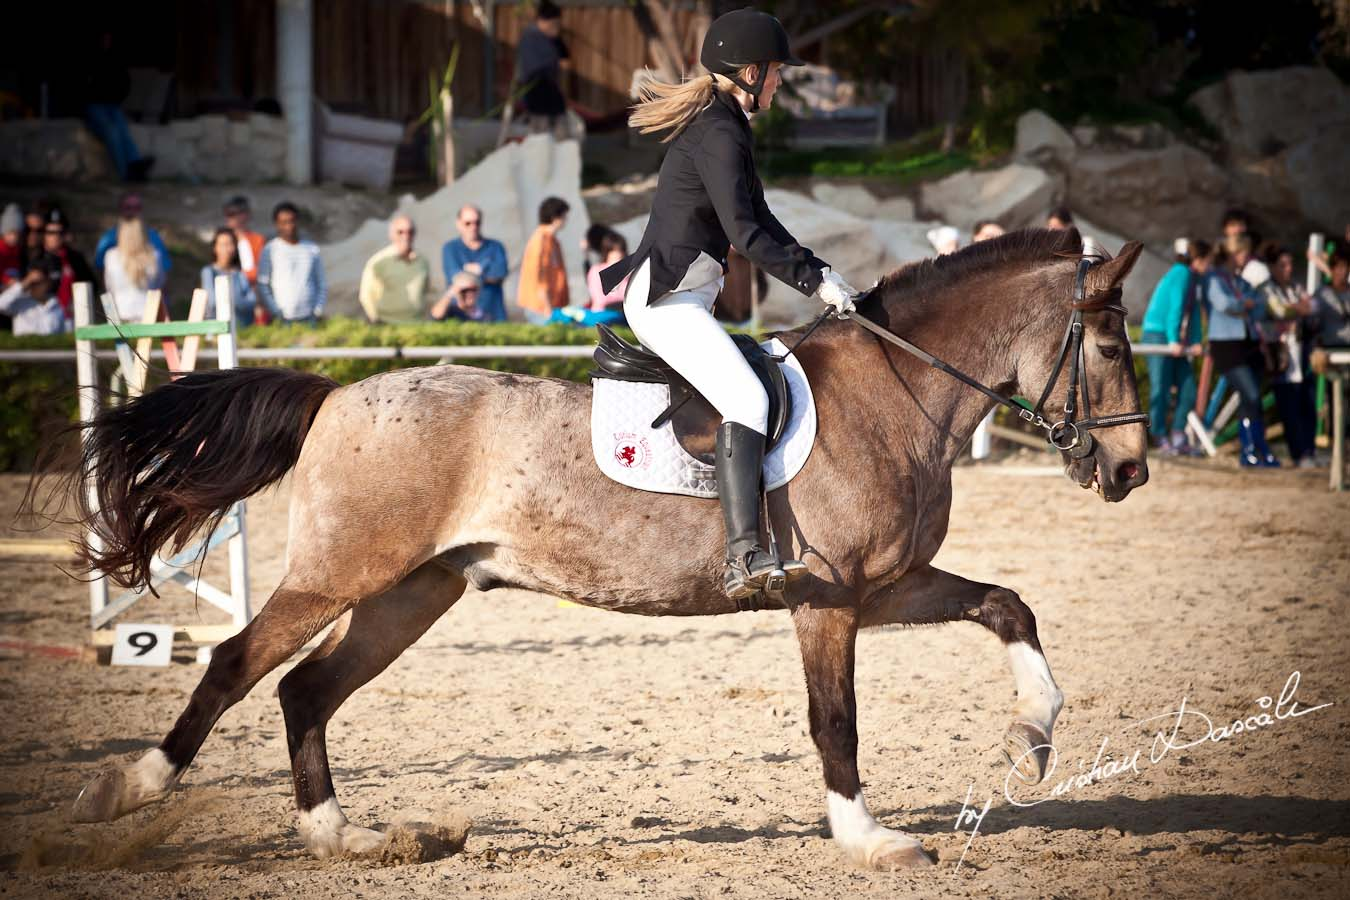 Curium Equestrian Centre - Horse Riding Competition. Photographer: Cristian Dascalu